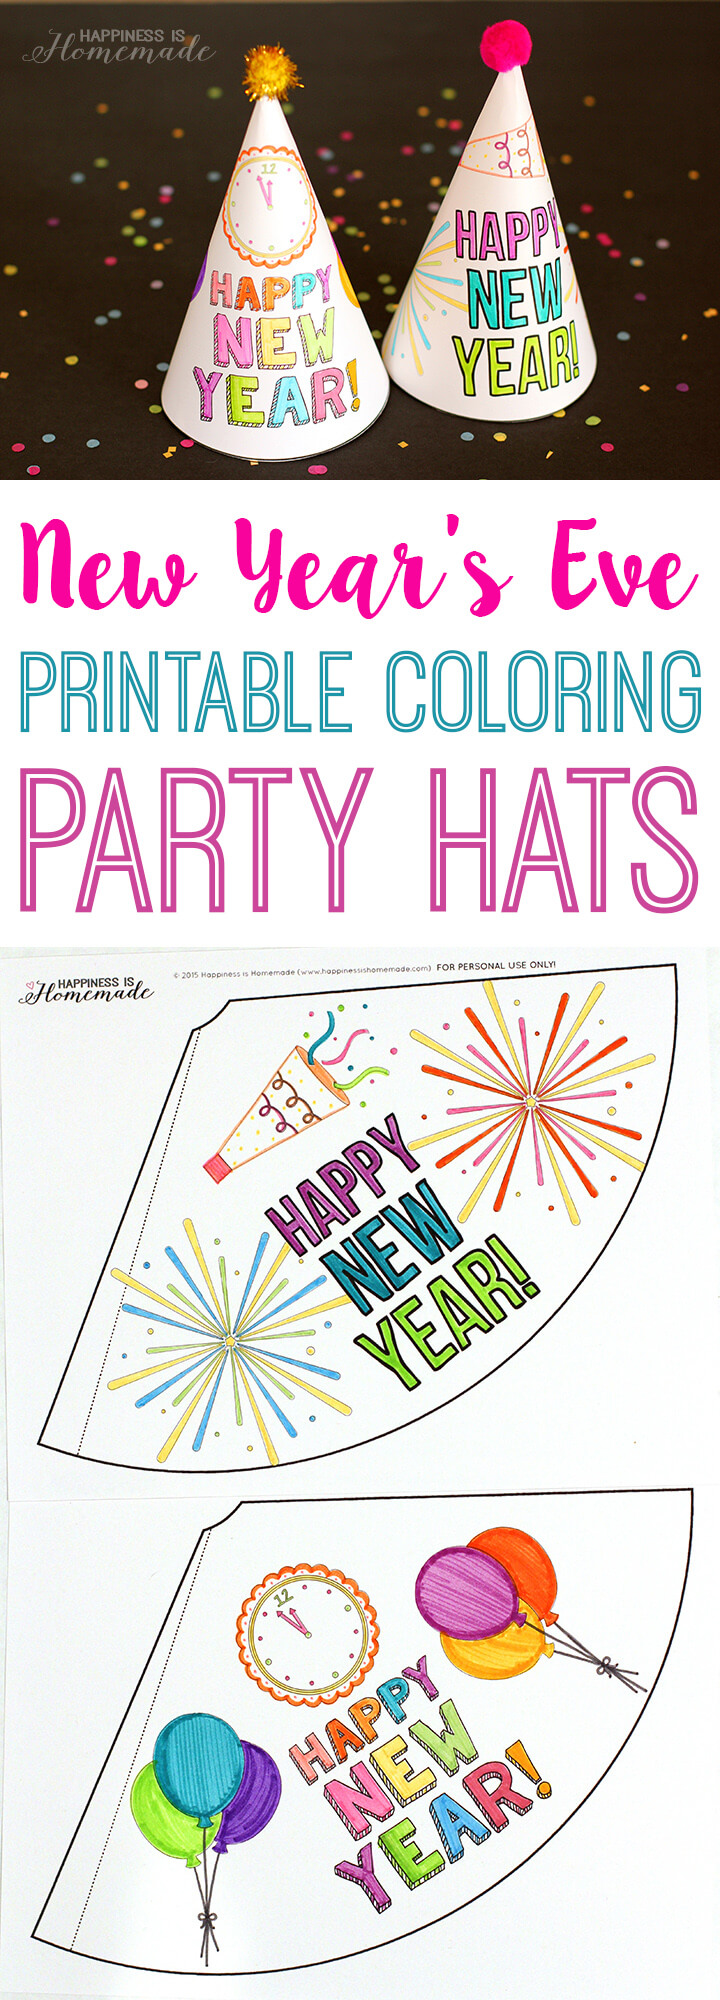 printable coloring party hats for new years eve kid parties